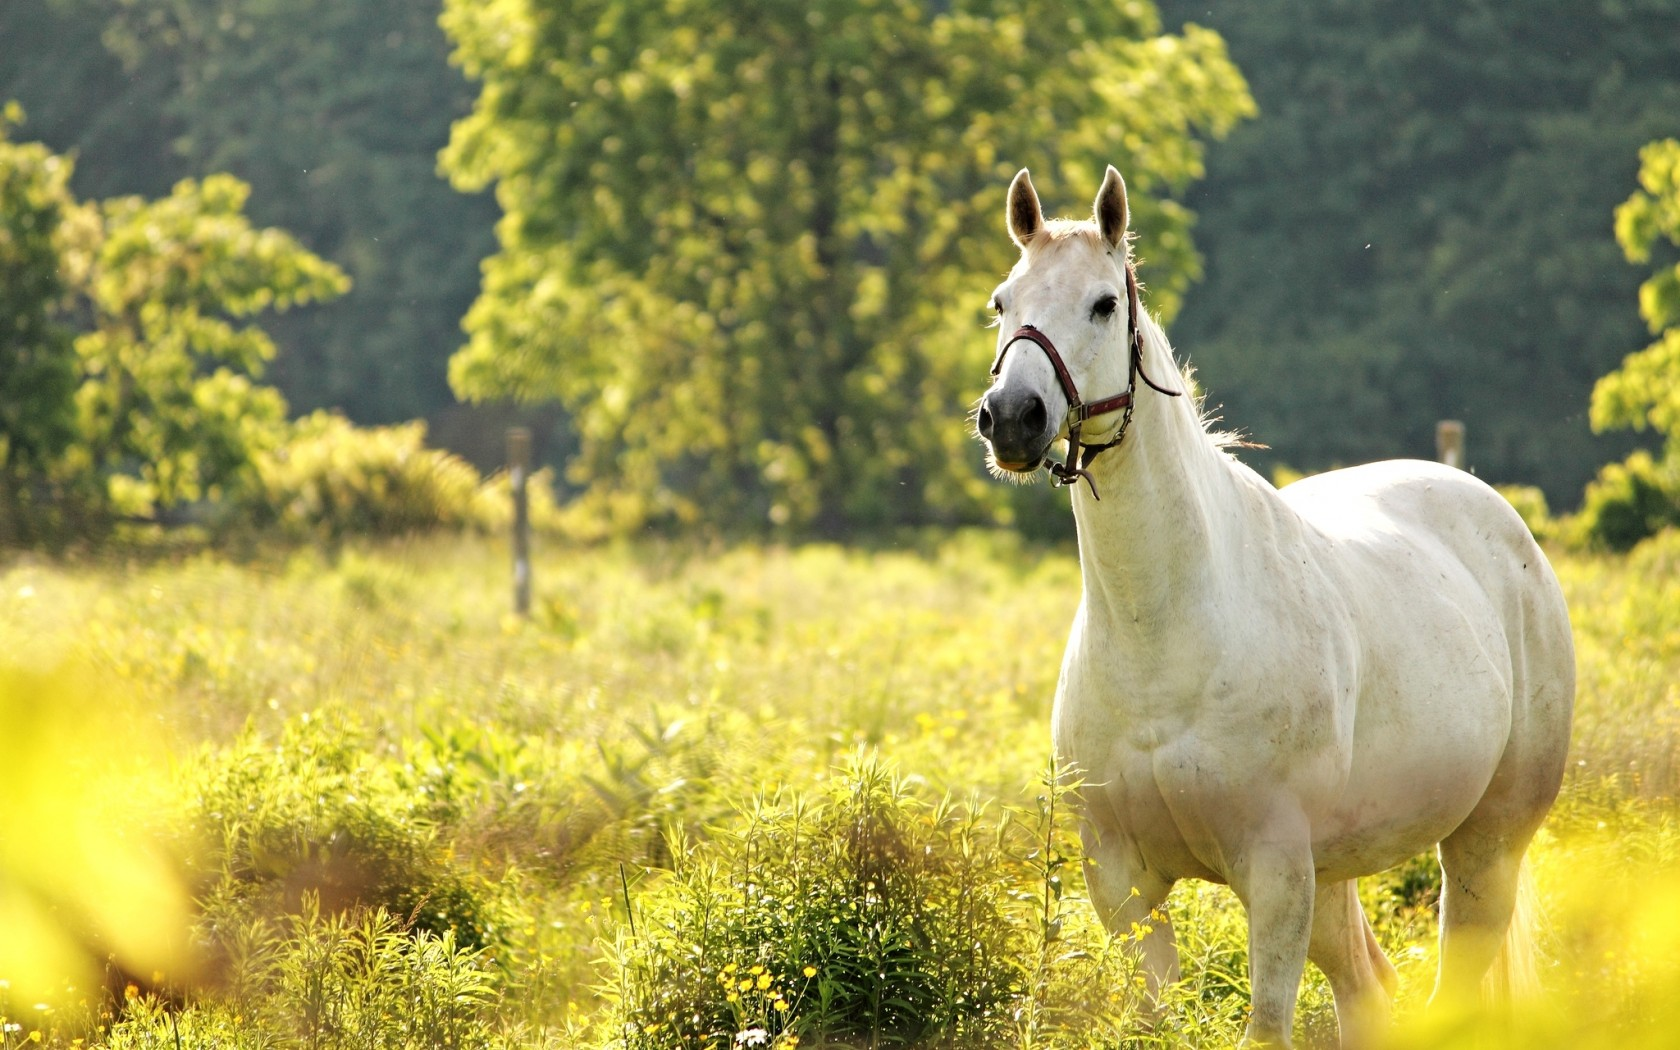 Spring Horse Wallpaper Images - Reverse Search